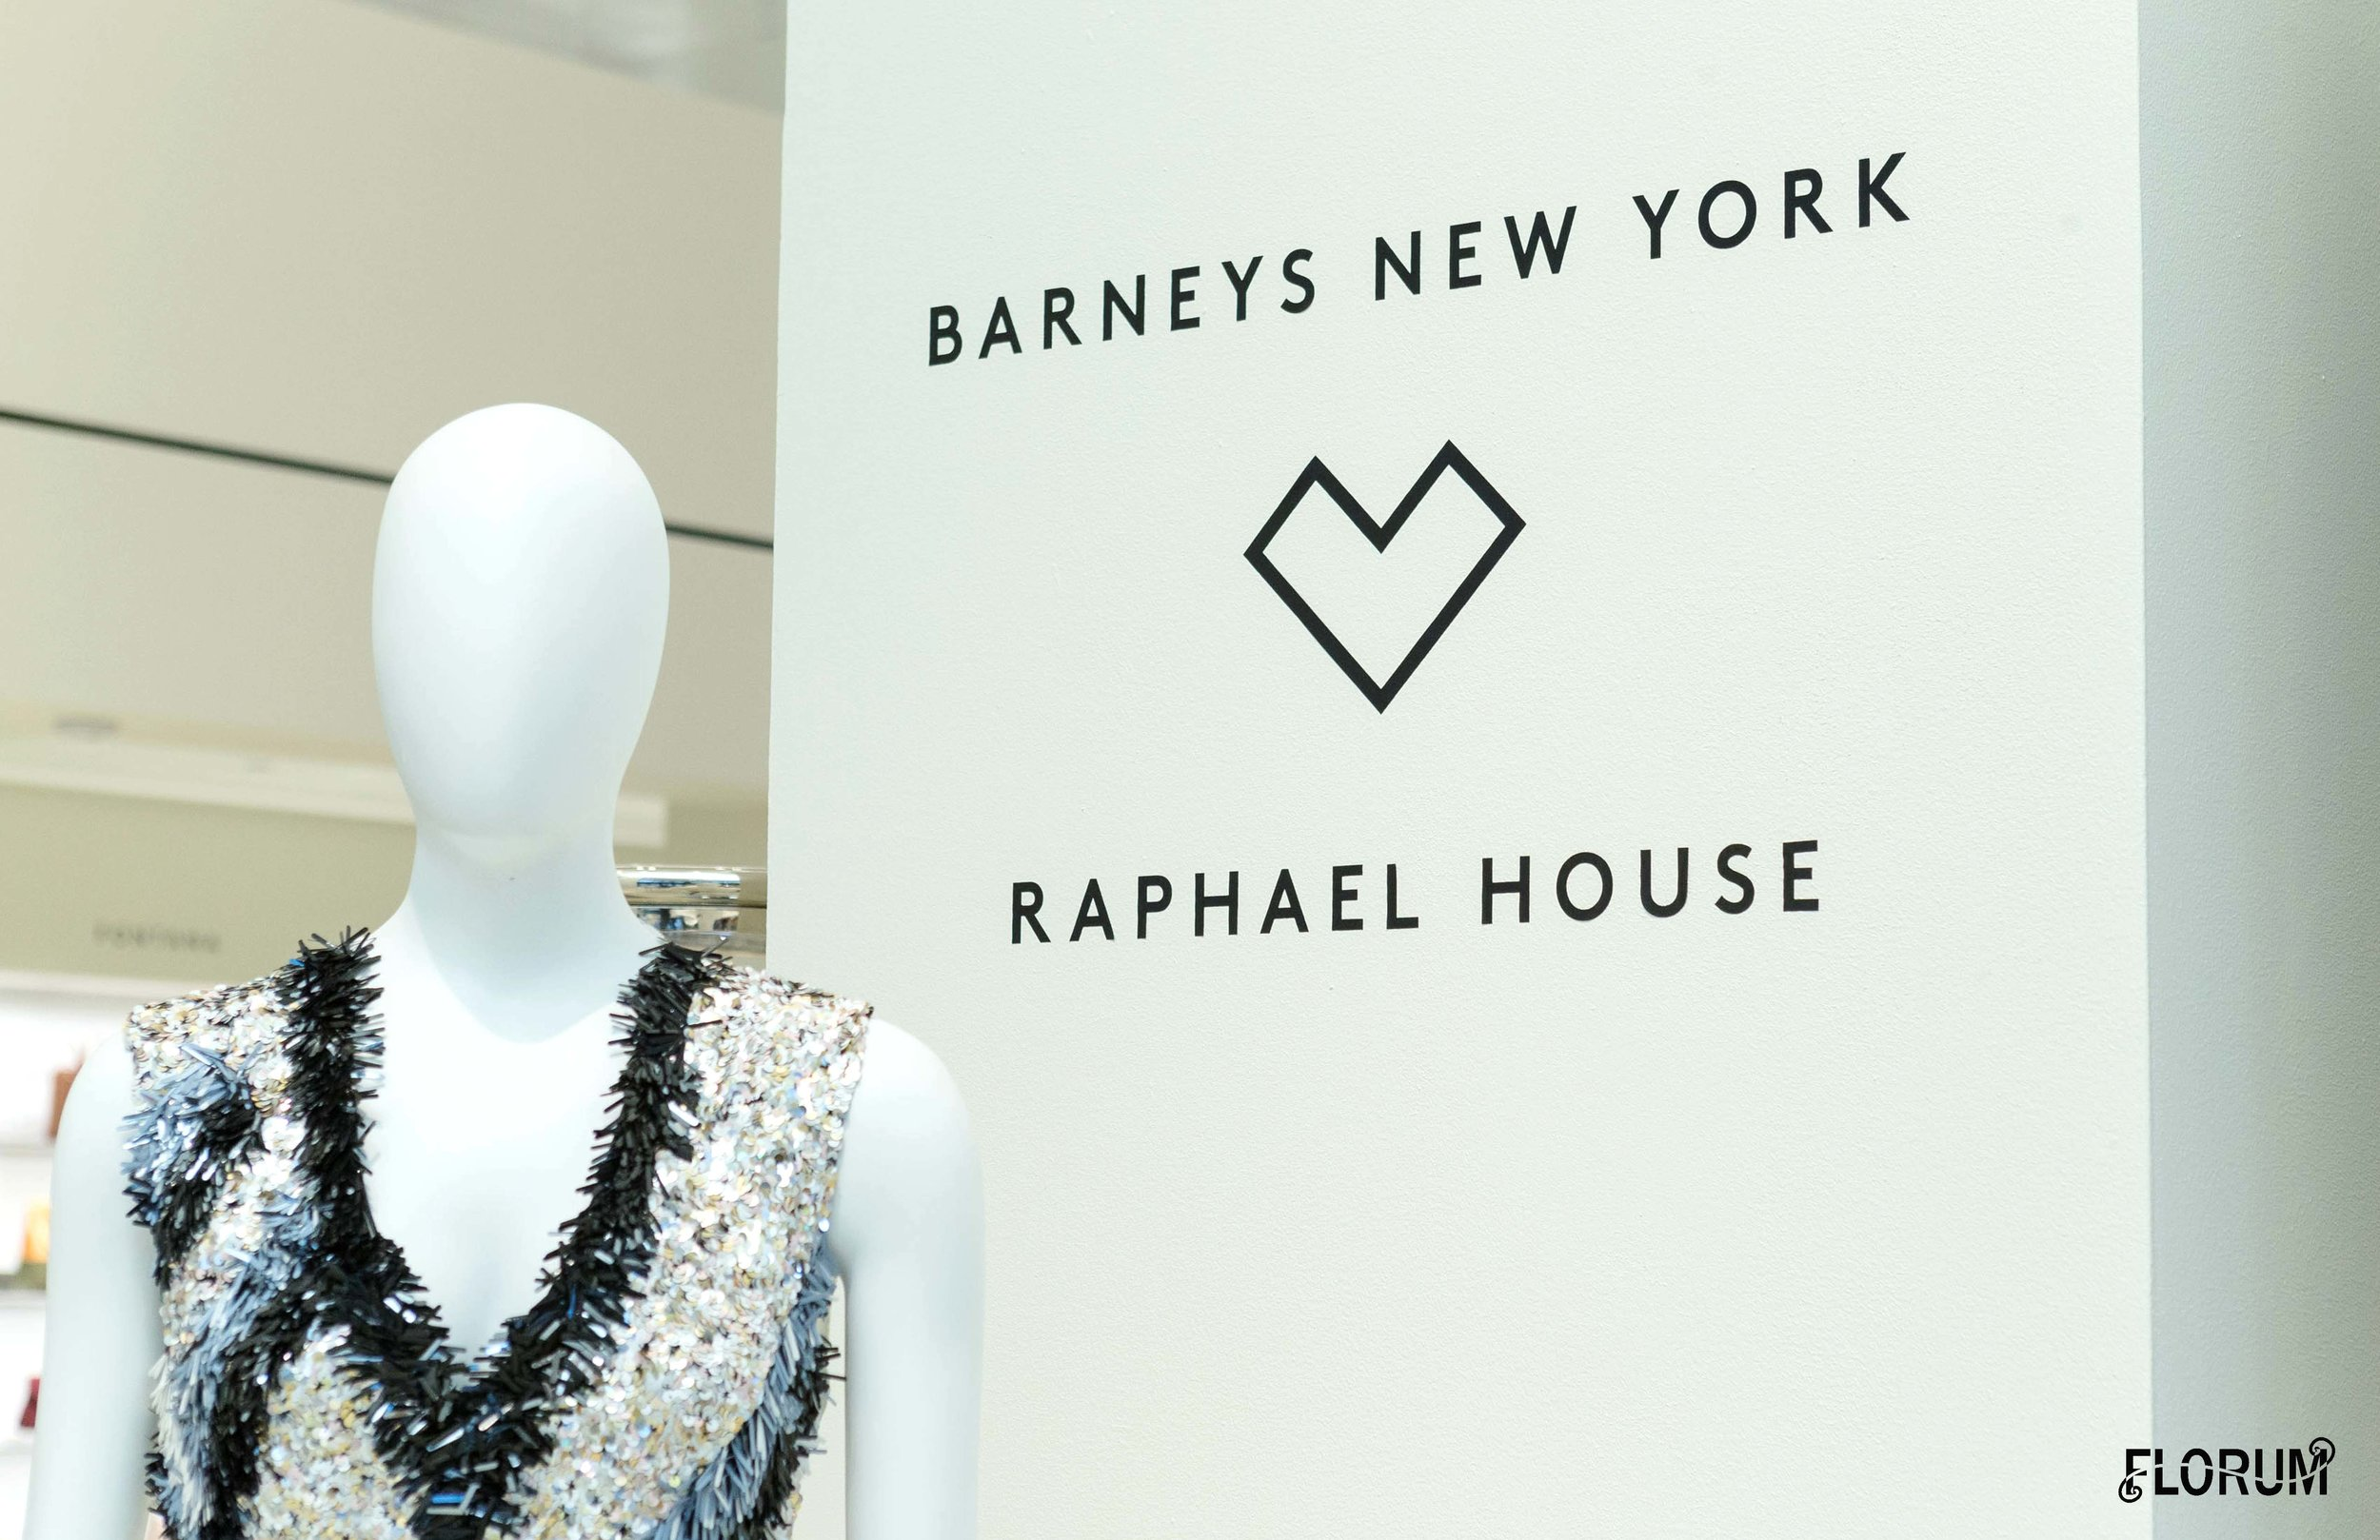 Barneys New York hosted a cocktail party and shopping event in support of Raphael House on Thursday April 5th, 2018.For the fourth year in a row, the Barneys New York Foundation hosted this annual event to support the vital work Raphael House does to help San Francisco area families achieve independence and reach a brighter futures.Launched in 2016, the Barneys New York Foundation is built around three main pillars of giving—human rights, education, and the arts   Click  HERE  to find out more about the  Barney's New York Foundation